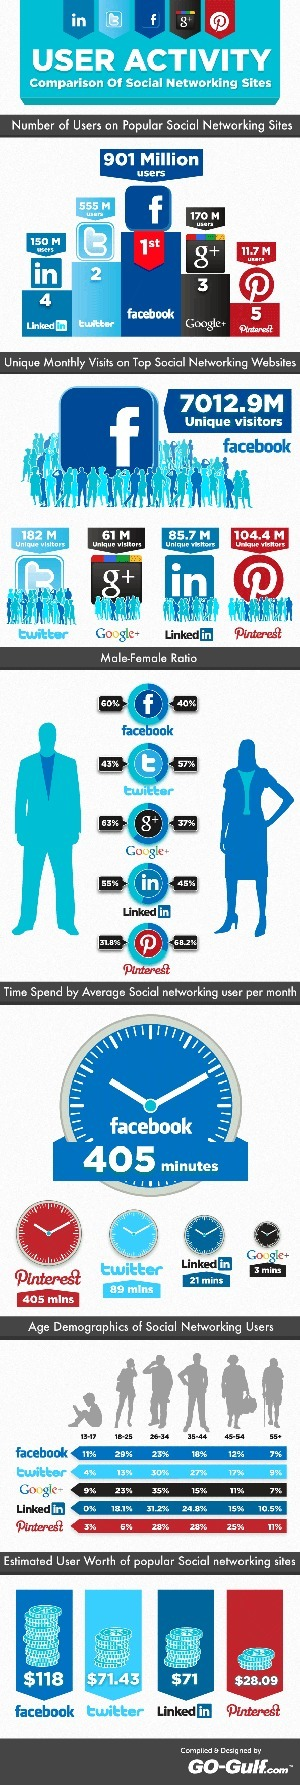 User activity: A Comparison of Social NetworkingSites…05.15.12 | :: The 4th Era :: | Scoop.it